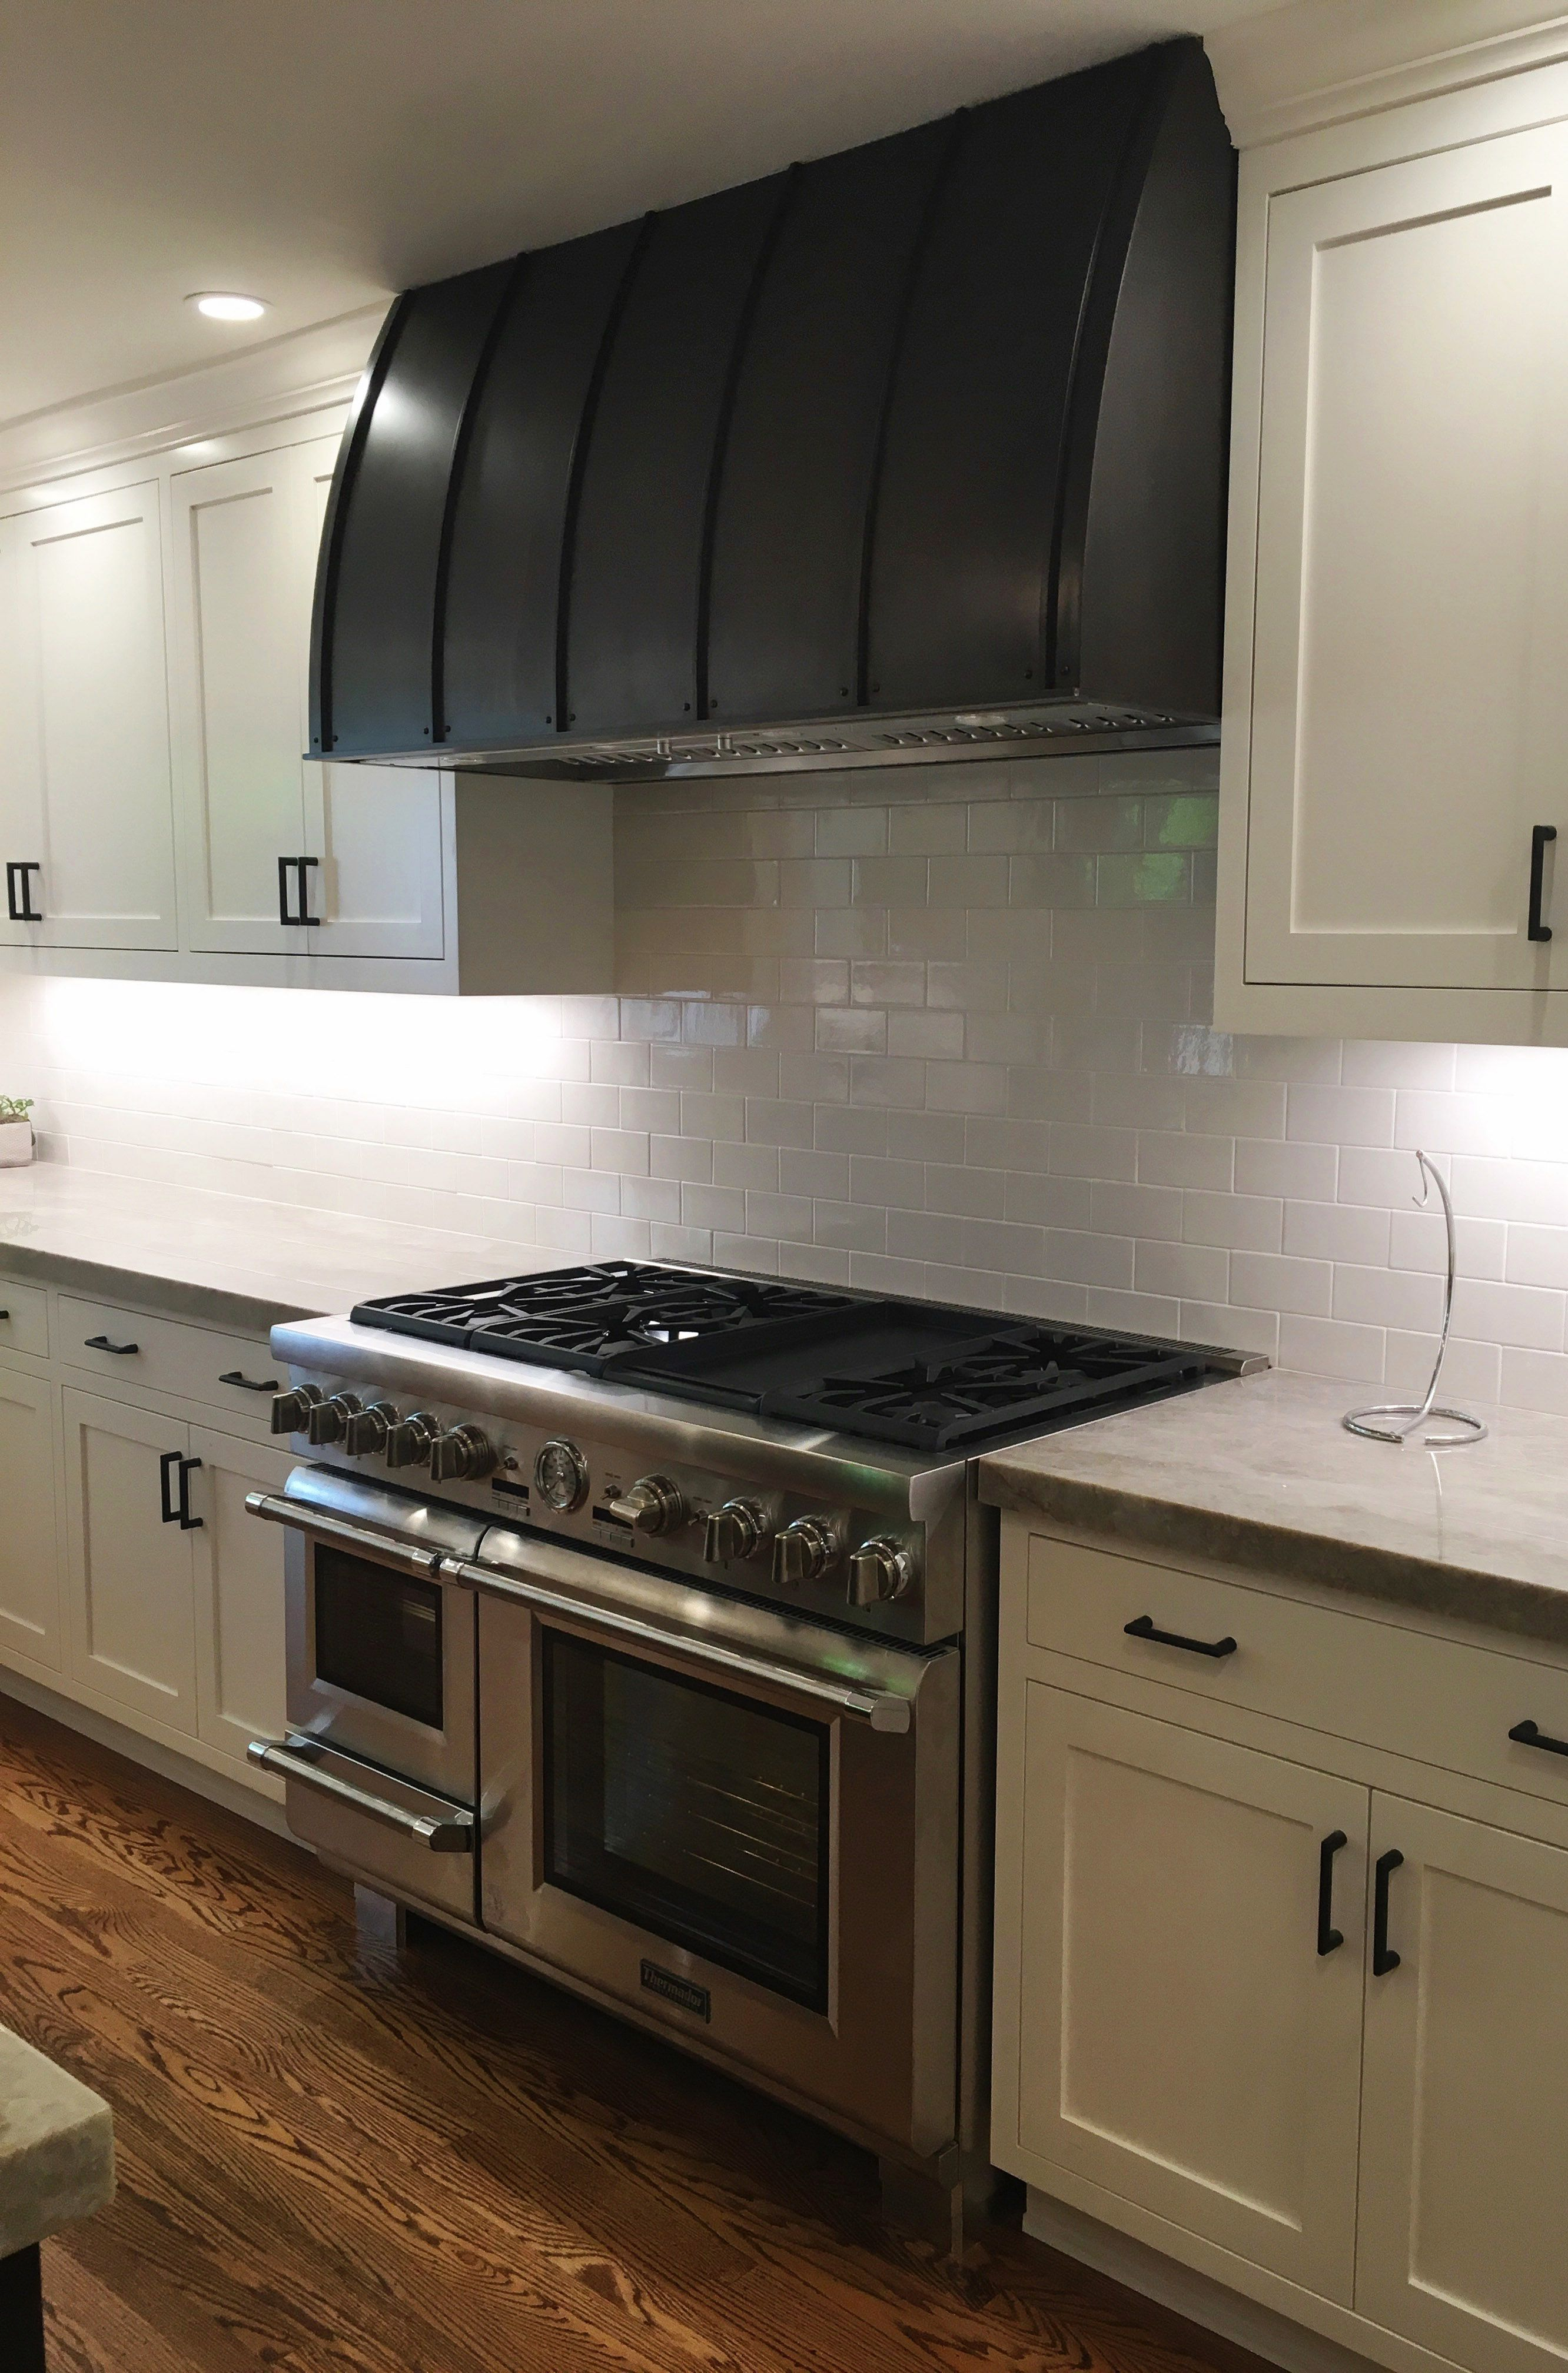 Custom Range Hood In Dark Washed Patinaraw Urth Designs Classy Custom Design Kitchen Decorating Inspiration